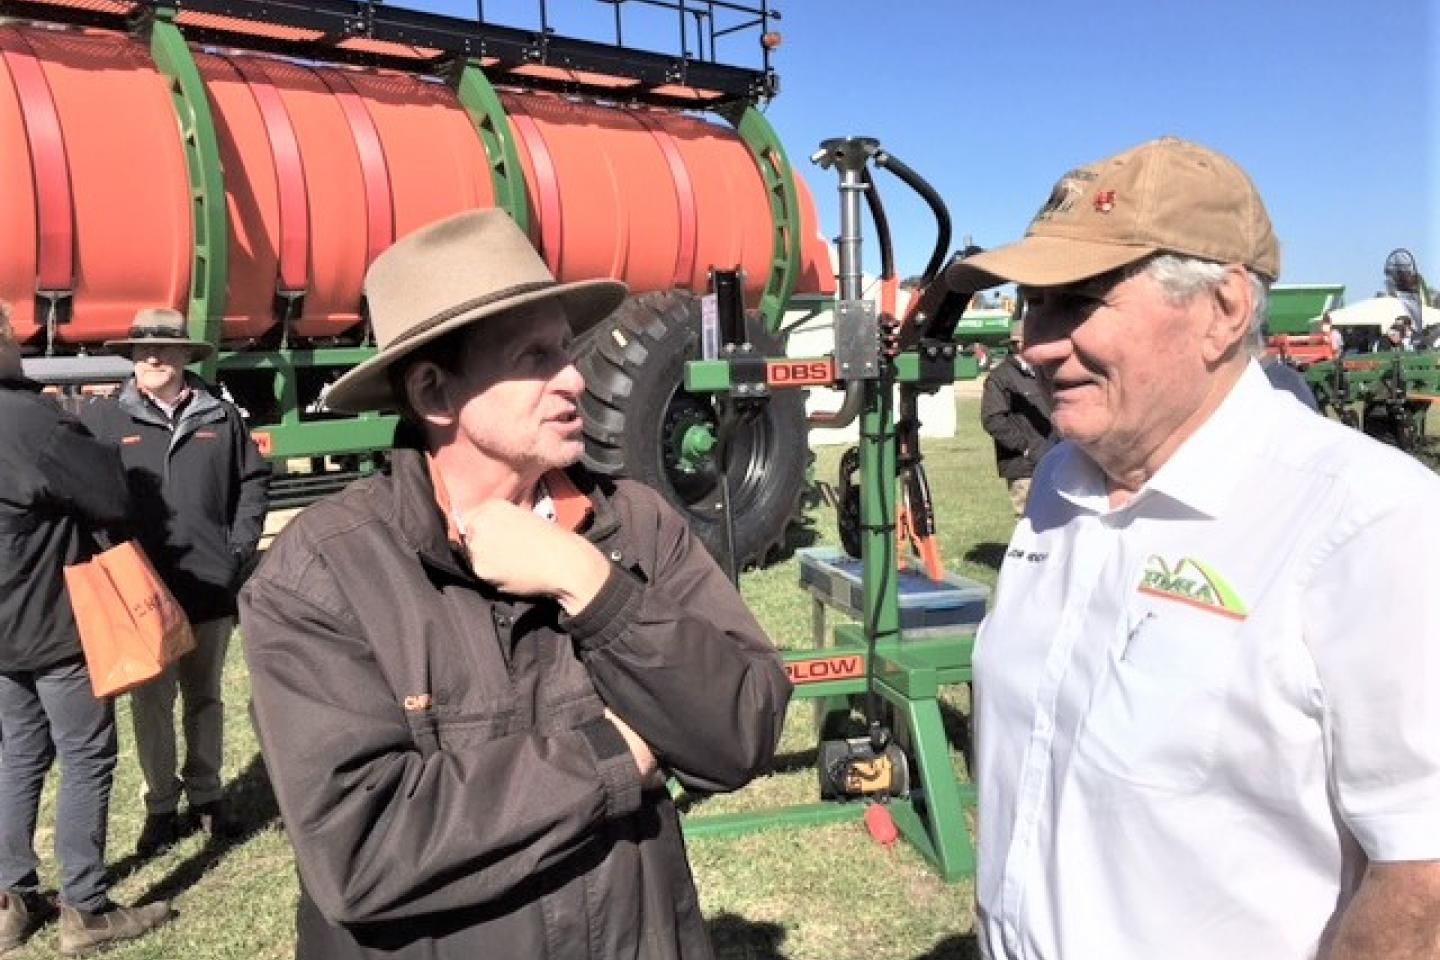 Ausplow sales and marketing manager Chris Blight (left) caught up with Farm Machinery & Industry Association executive director John Henchy at the Ausplow display.